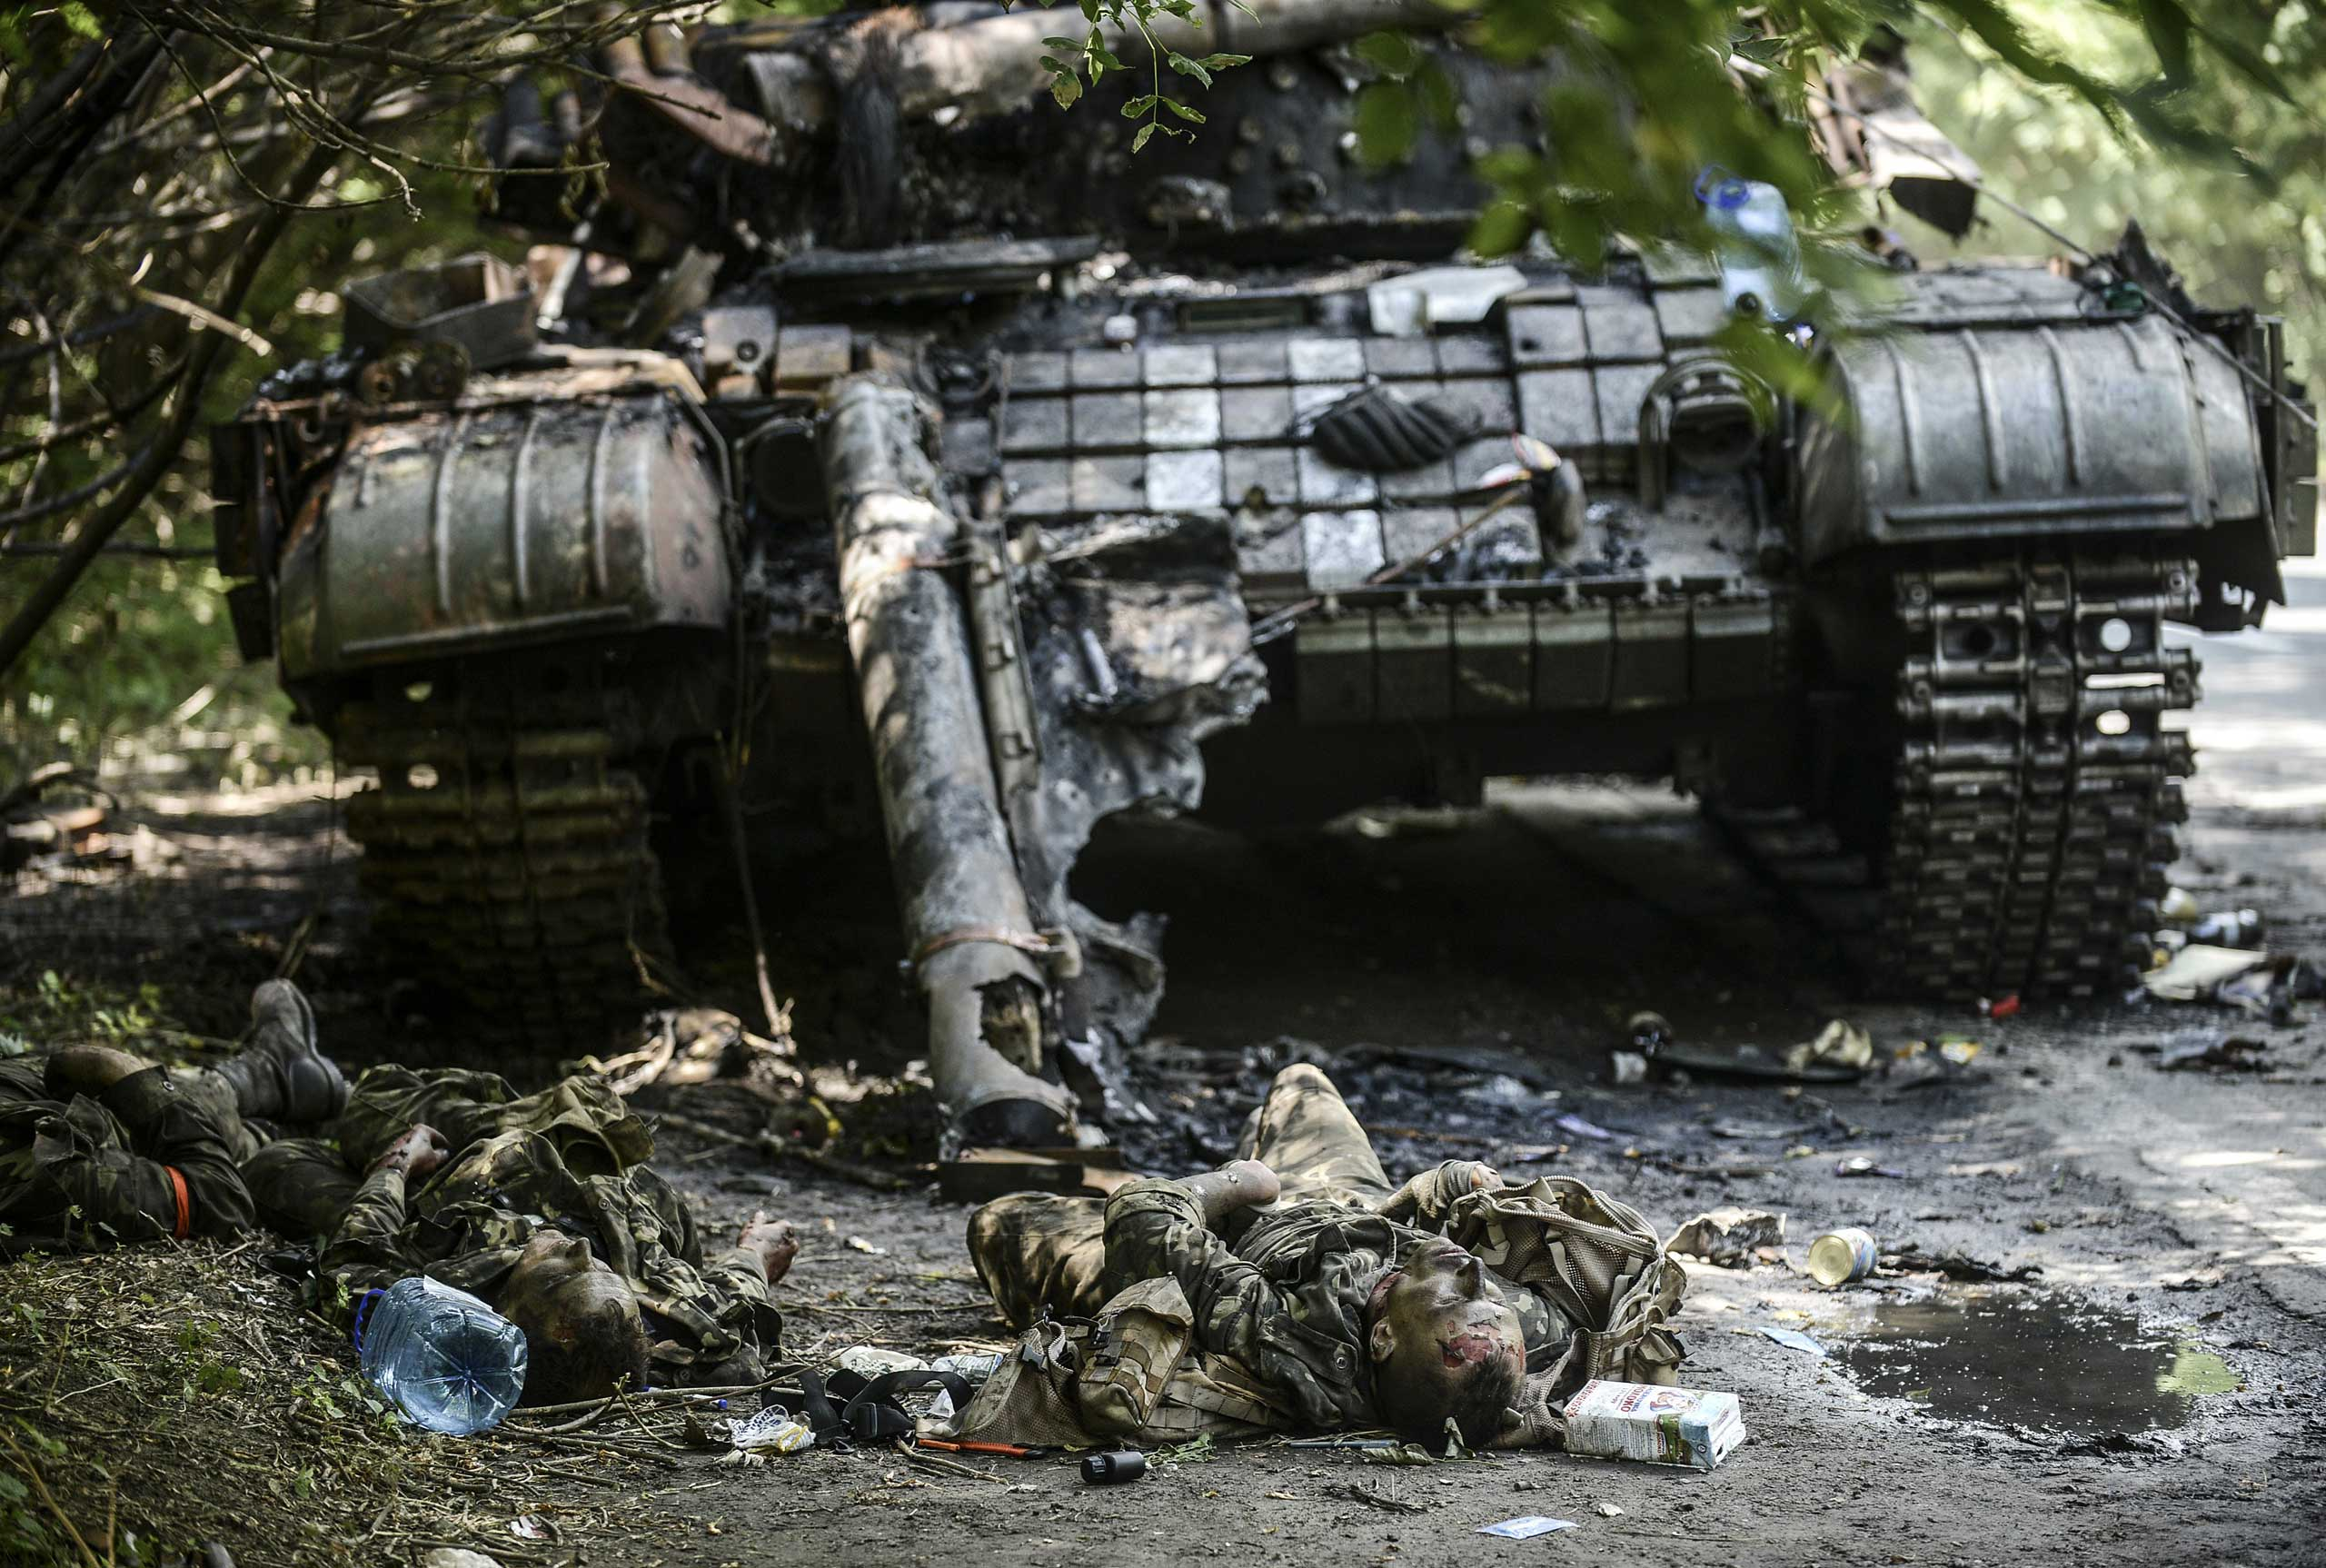 Bodies of crew members lie next to a destroyed Ukrainian tank in the northern outskirts of the city of Donetsk, Ukraine, on July 22, 2014.